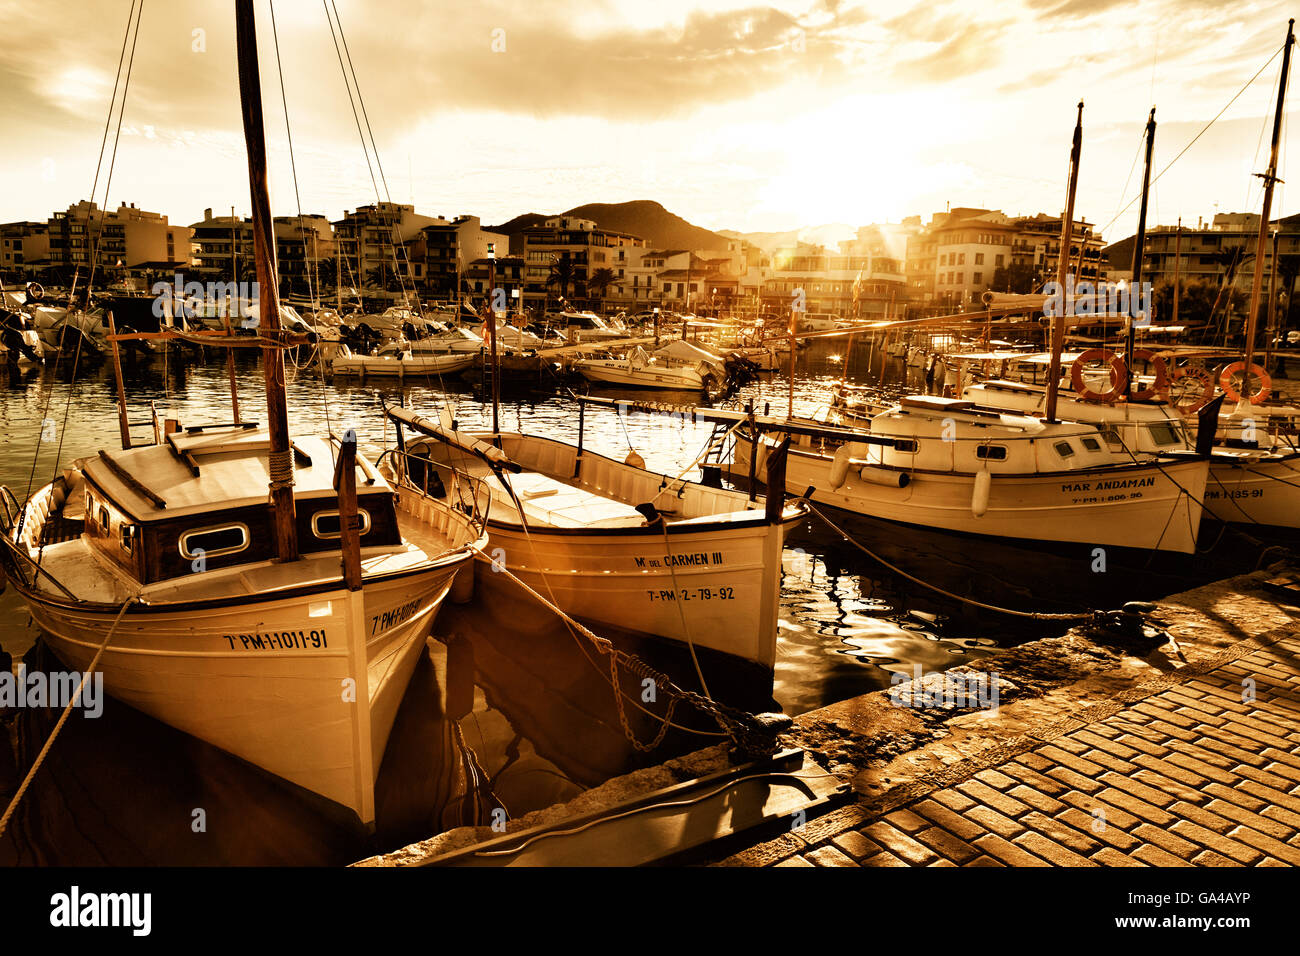 Sunset over boats in the harbour, Puerto Pollensa ( Pollenca ), Mallorca ( Majorca ), Balearic Islands, Europe - Stock Image